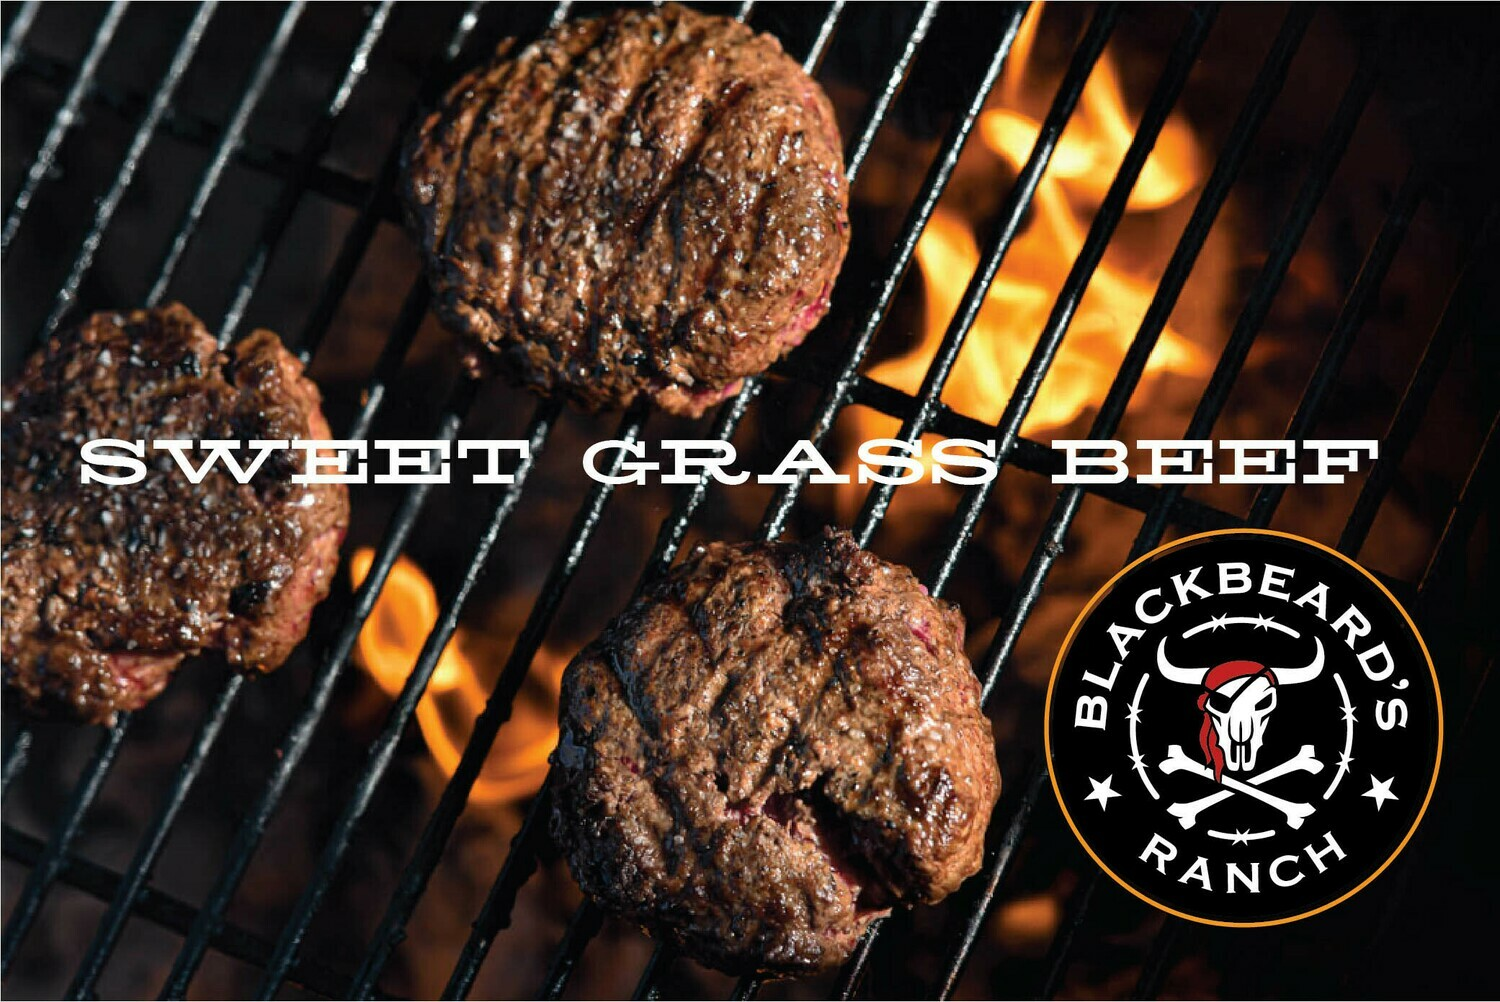 New Sweet Grass Beef- Ground 80/20 - 1lb. Frozen. Special Price!